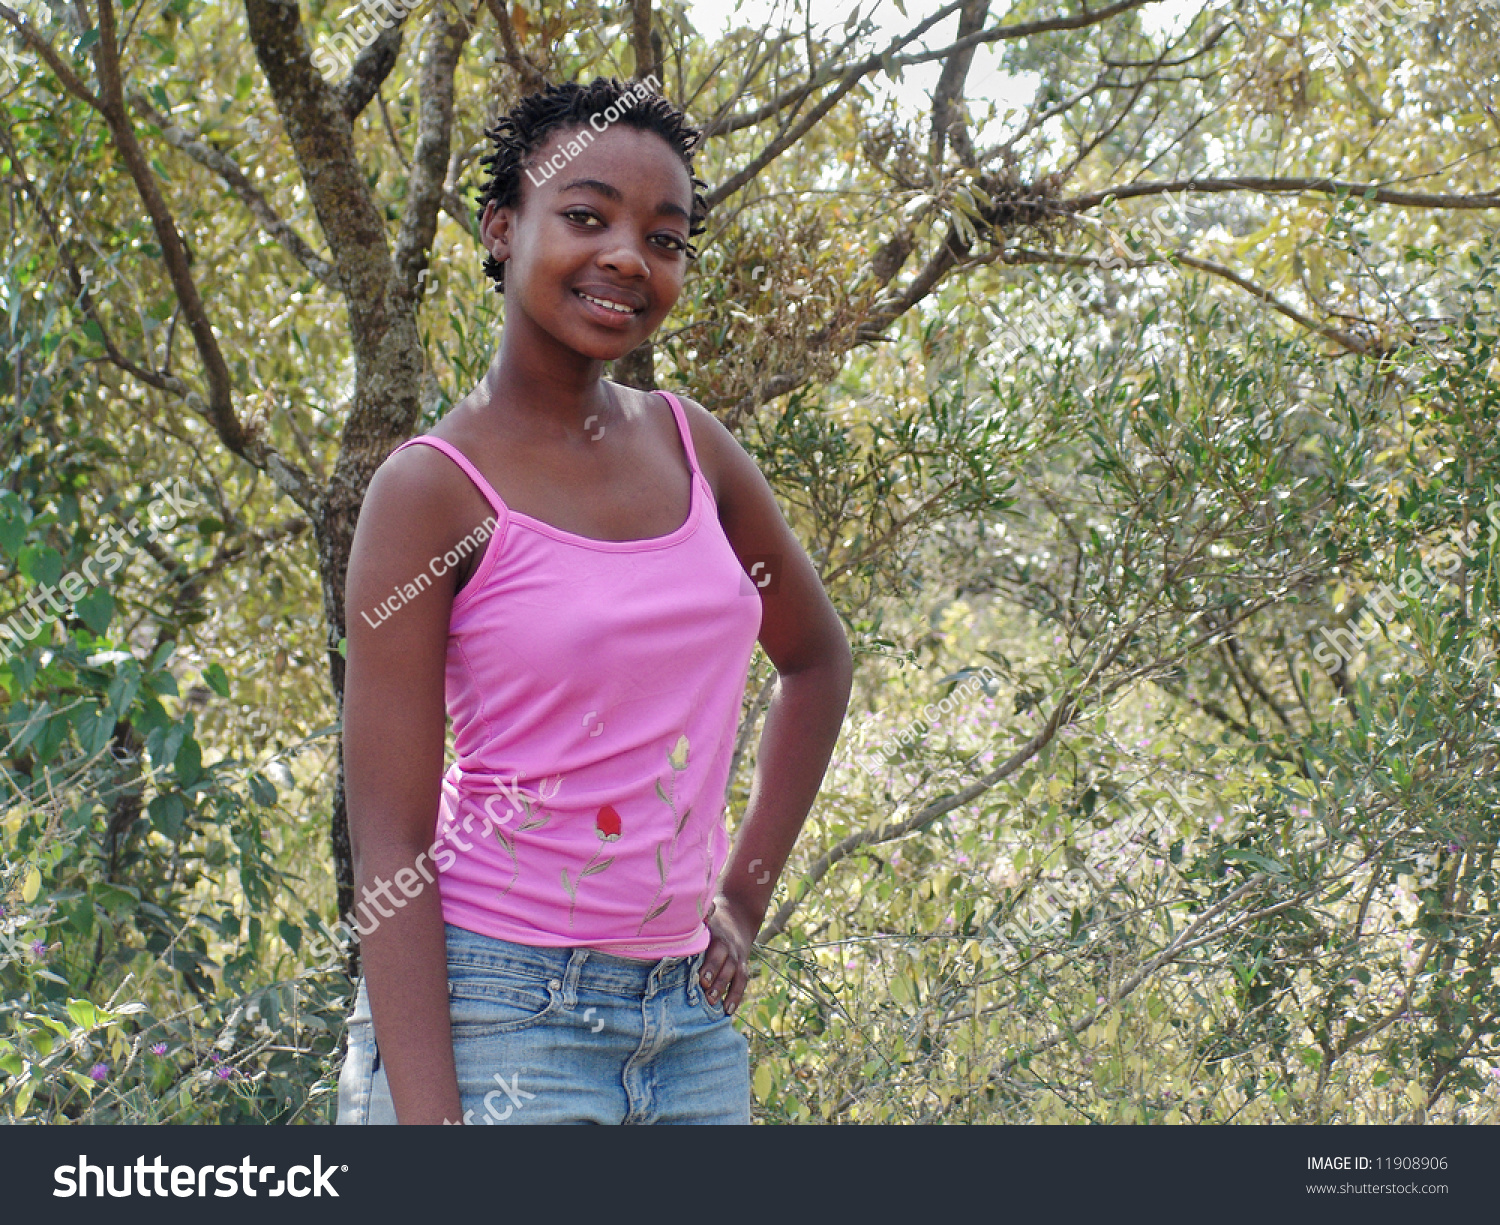 Nude Native African Teens Free Download 68